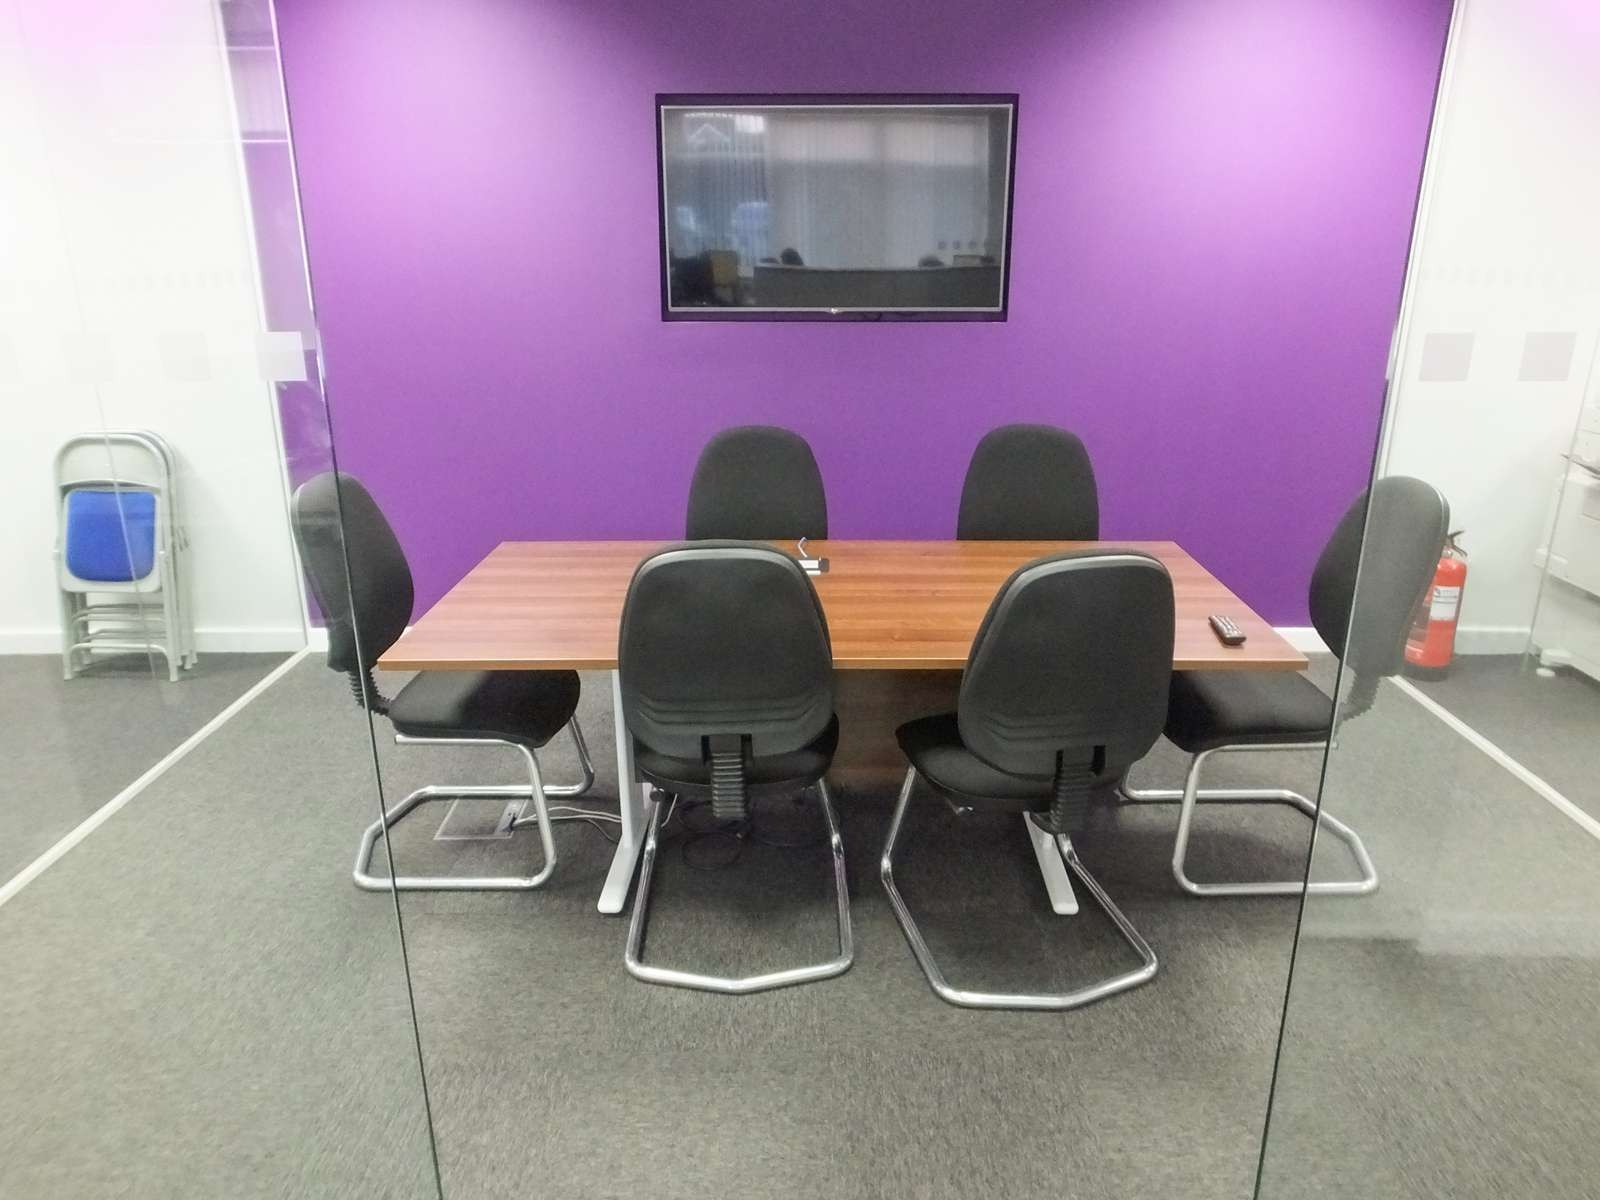 Office Refurbishment With Furniture